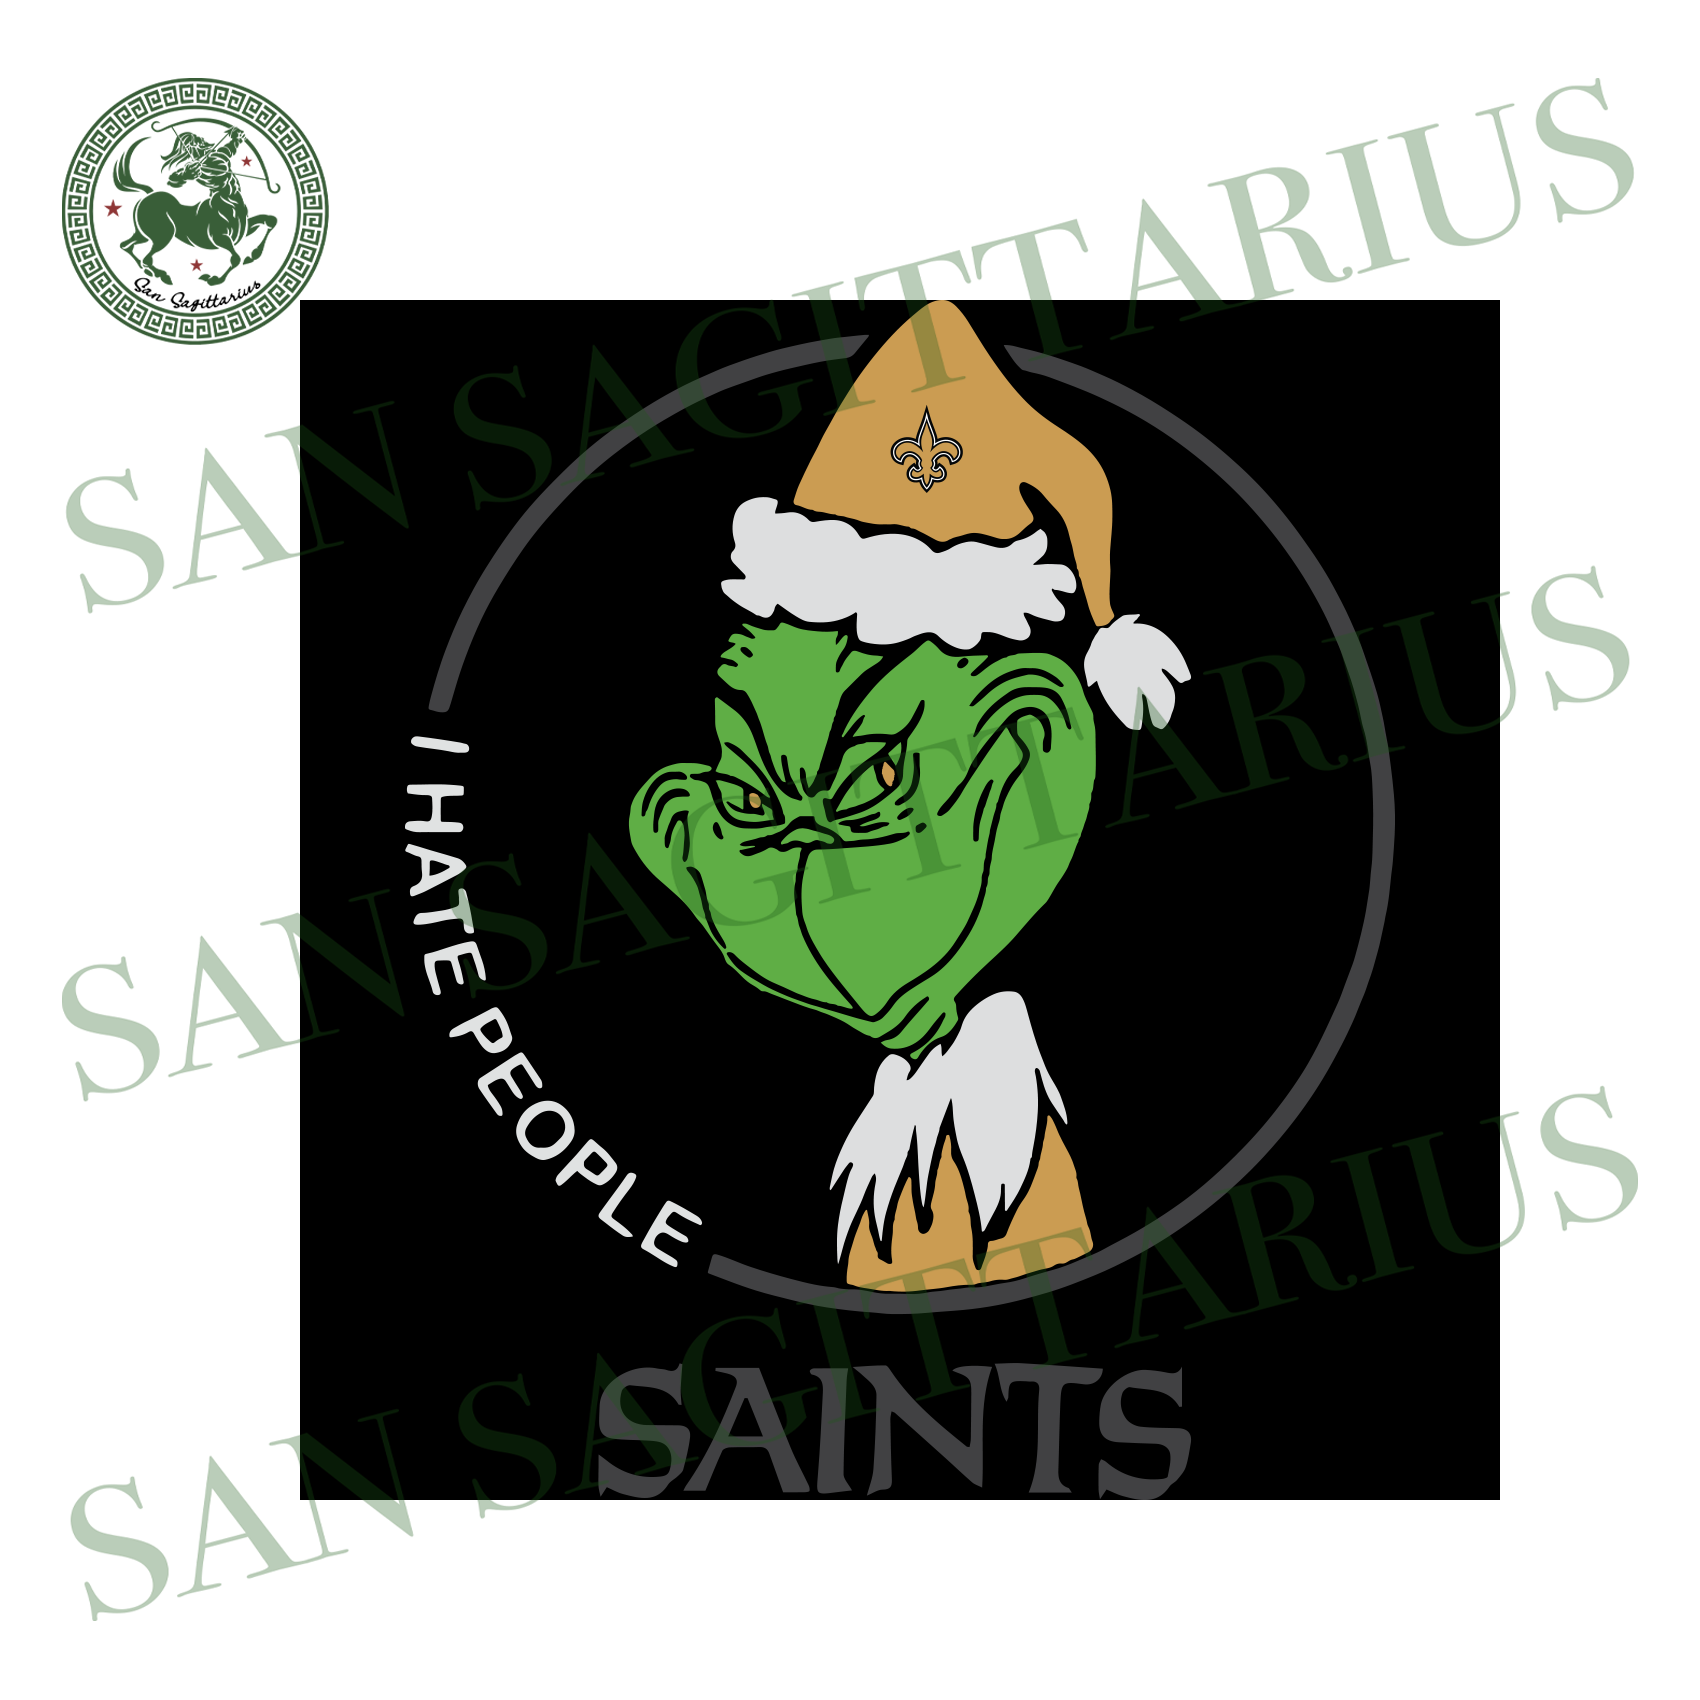 New Orleans Saints Logo With Grinch, Sport Svg, NFL Football Svg, NFL Svg, NFL Sport, New Orleans Saints Svg, New Orleans Saints, New Orleans Saints NFL Lover, New Orleans Saints NFL Svg